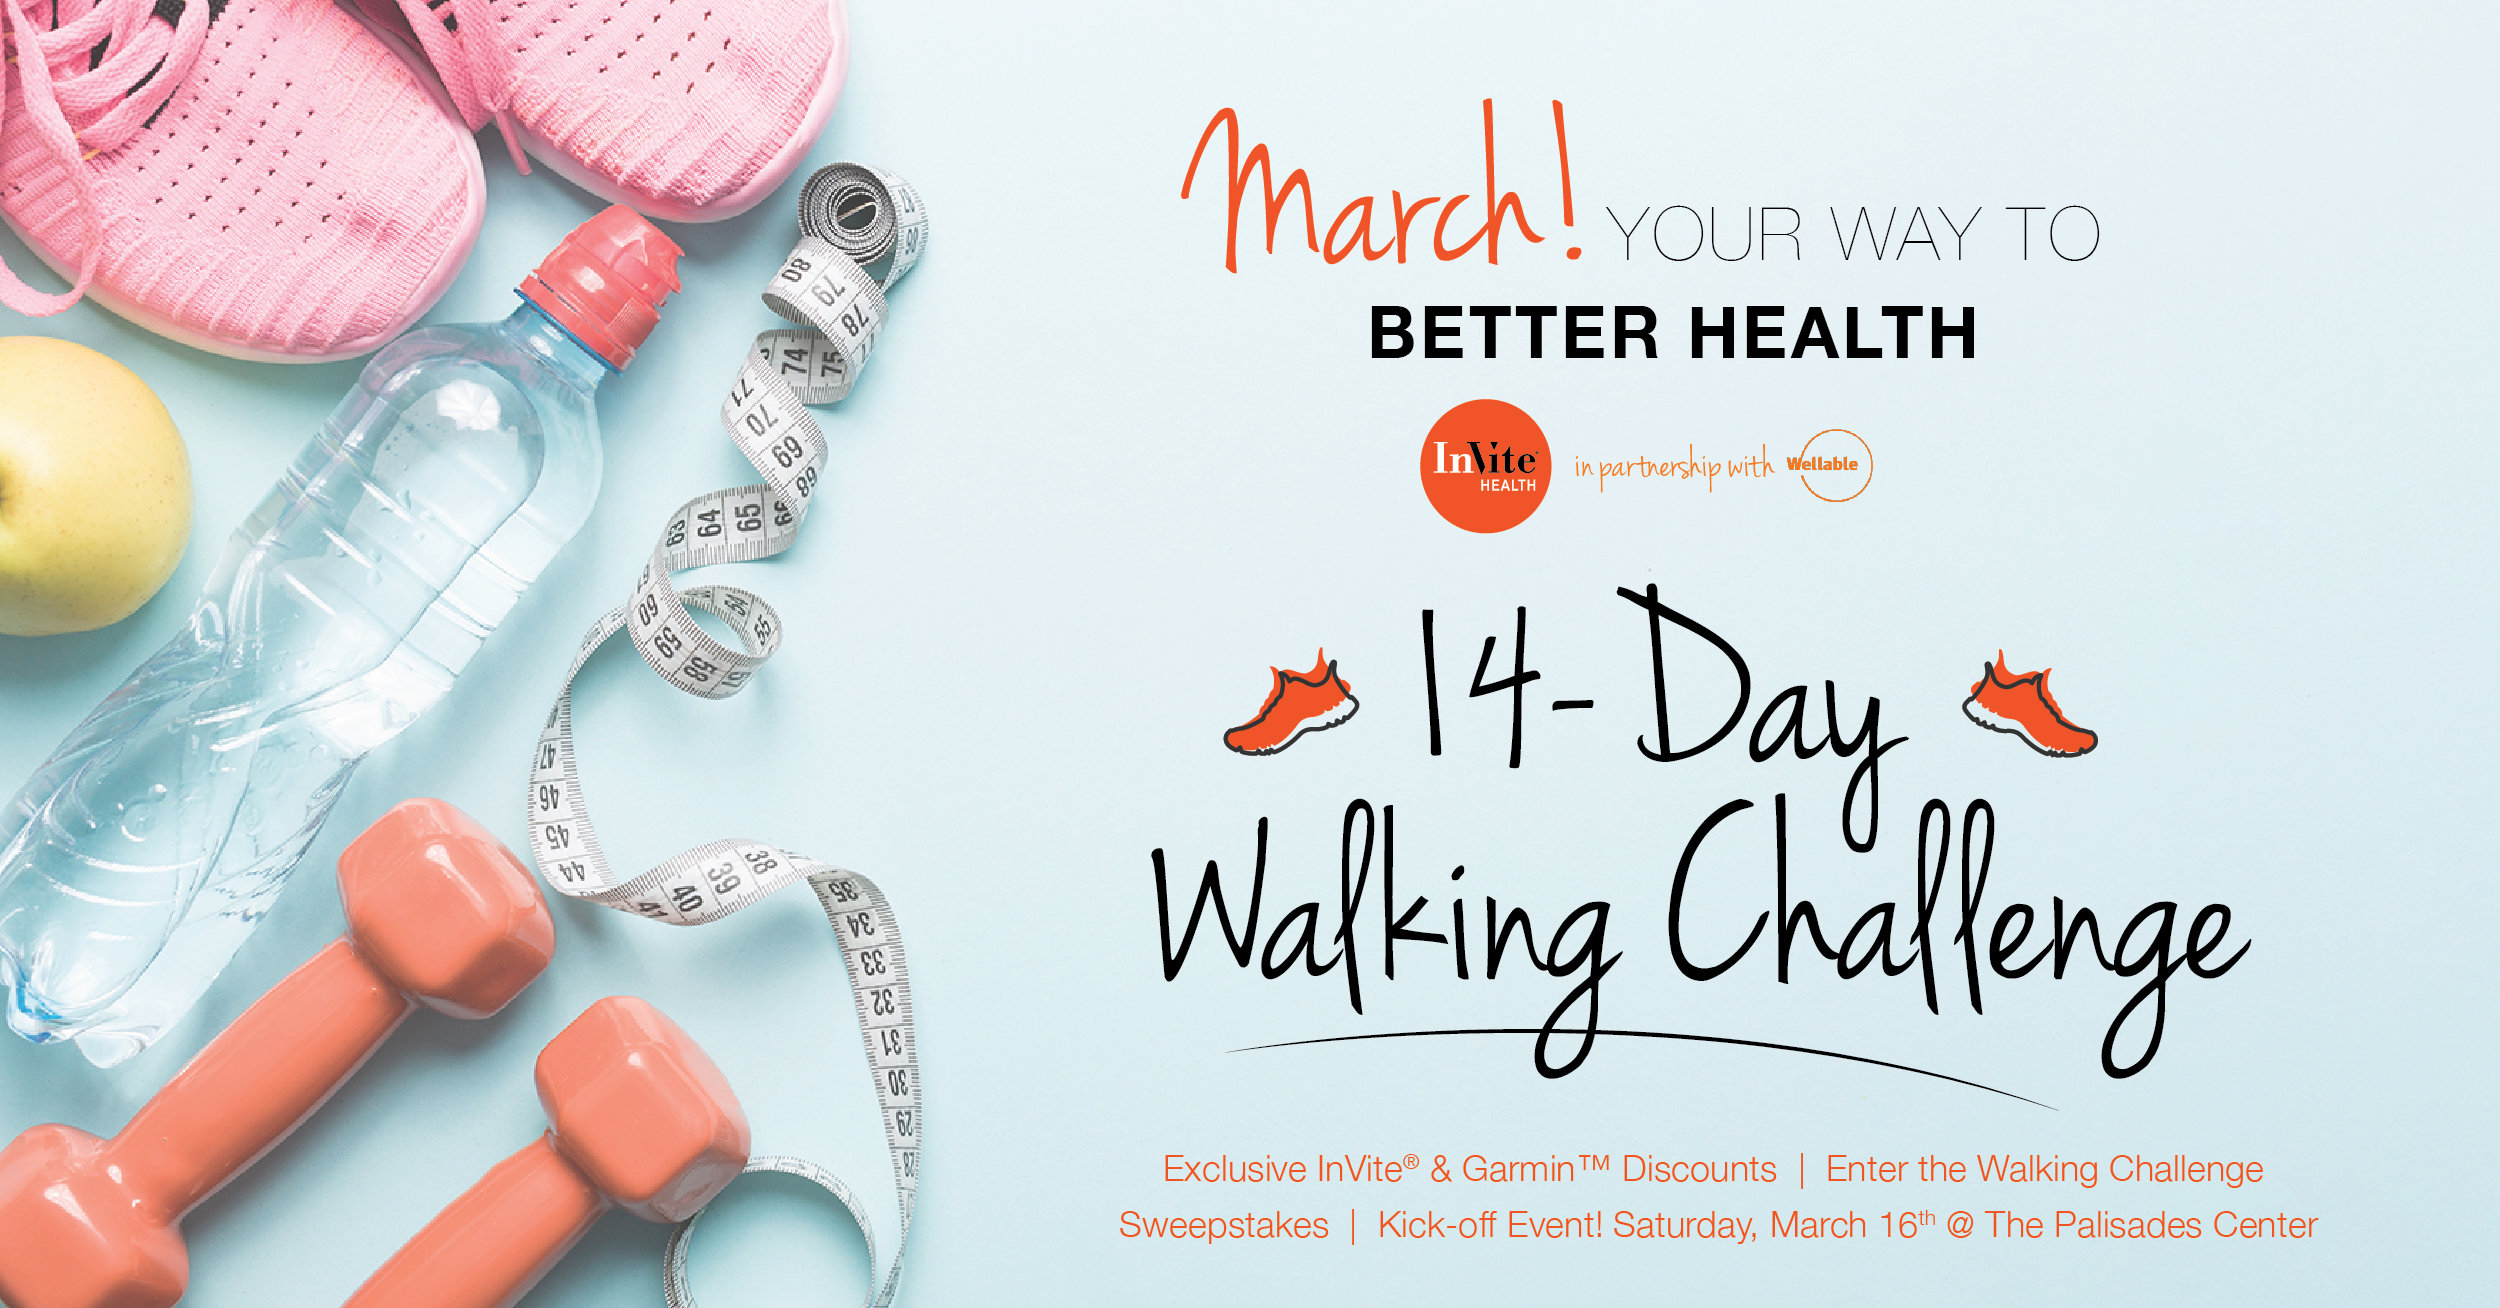 We Challenge You to Join The InVite® 14-Day Walking Challenge!